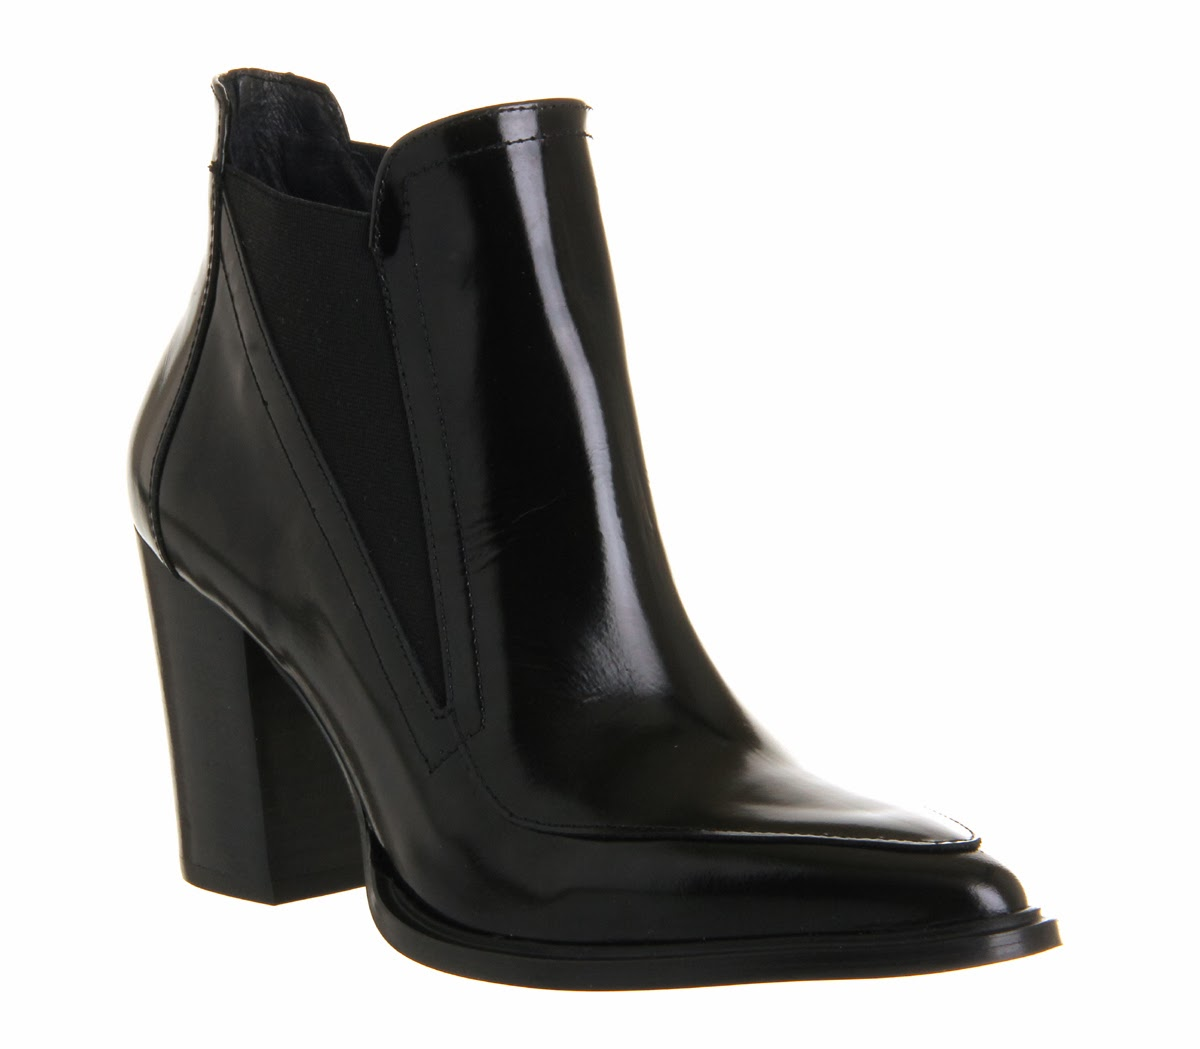 Black patent ankle boots from Office